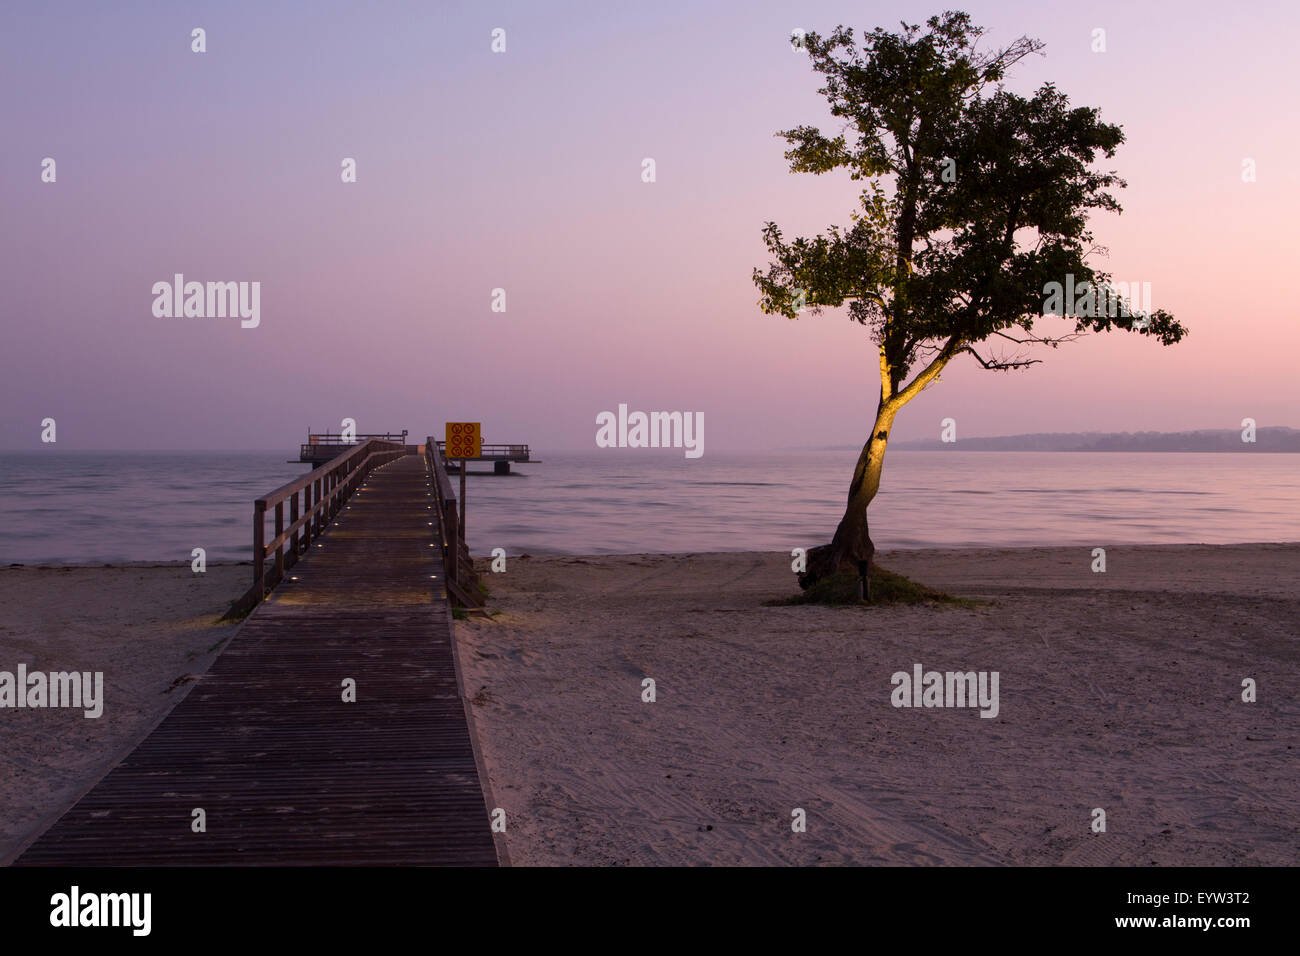 Footbridge at beach - Stock Image